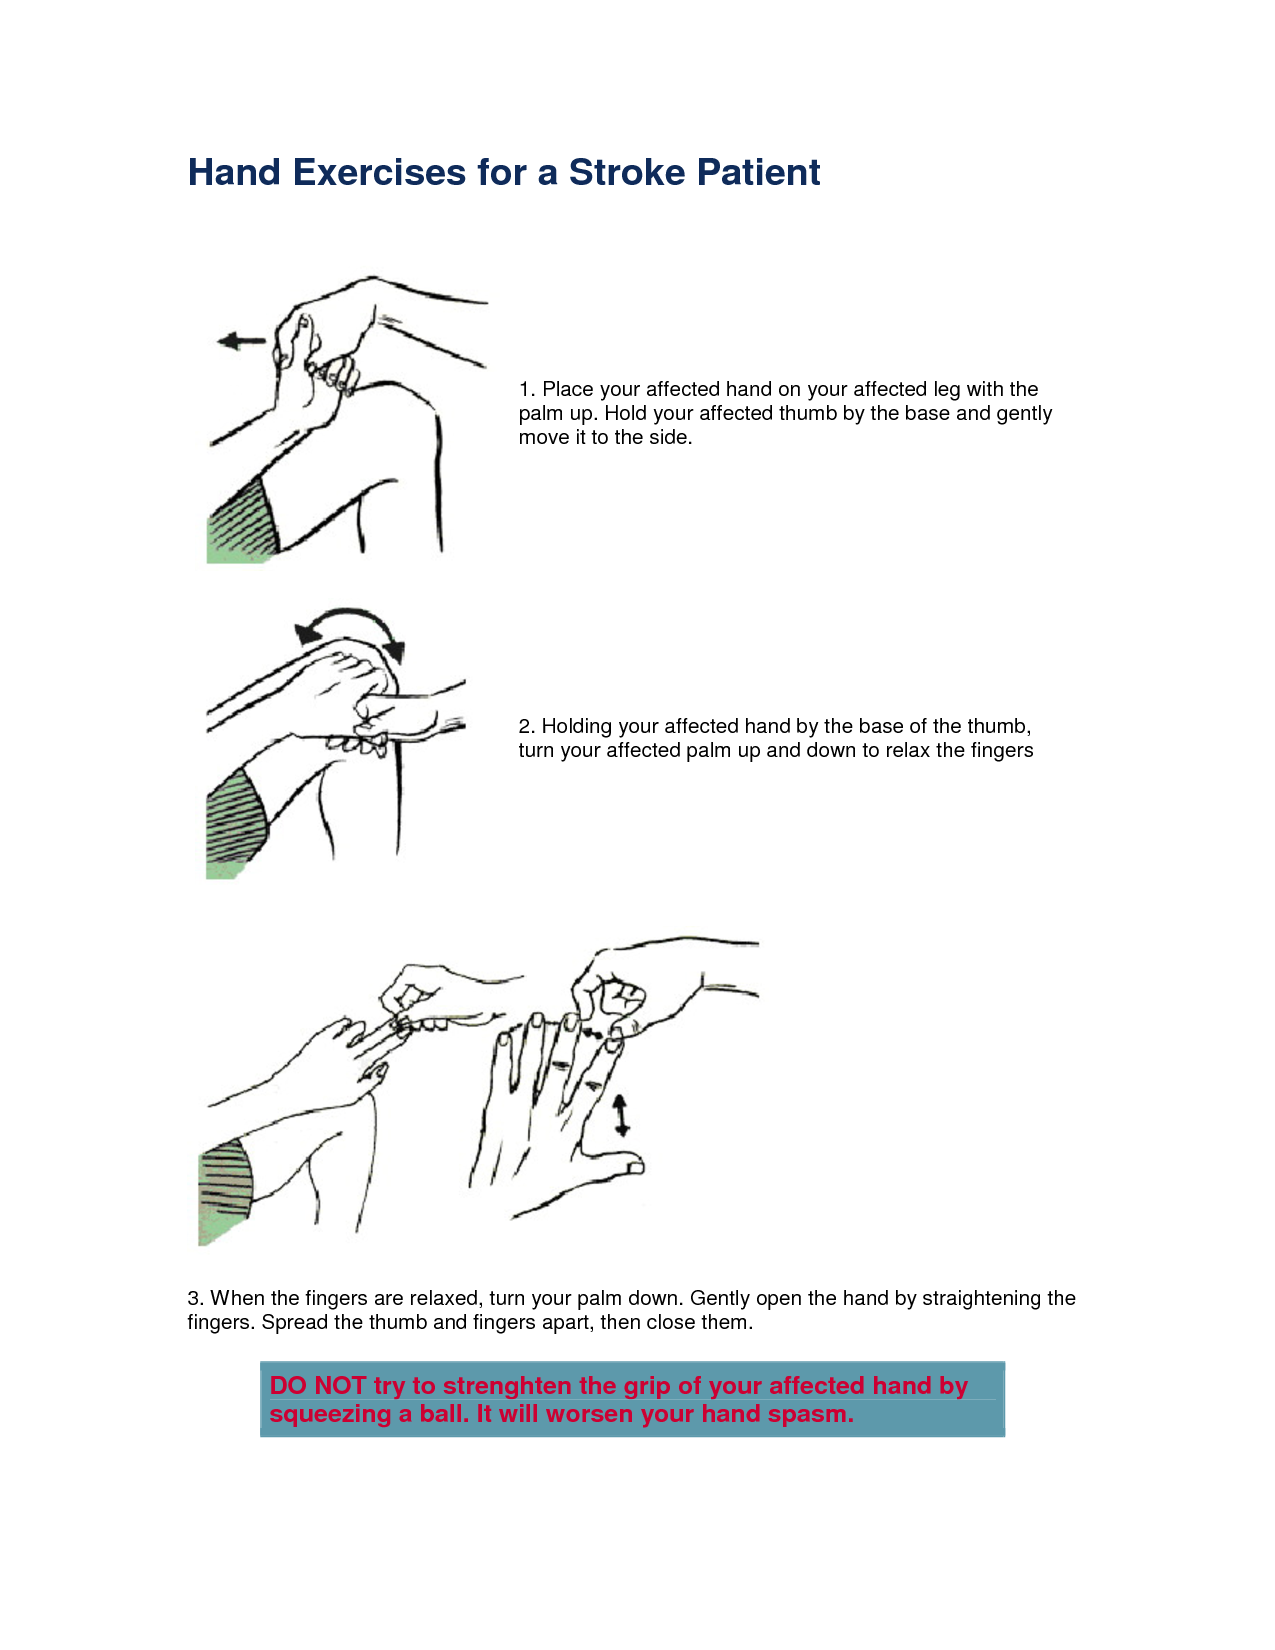 pictures of exercises for stroke patients   Hand Exercises